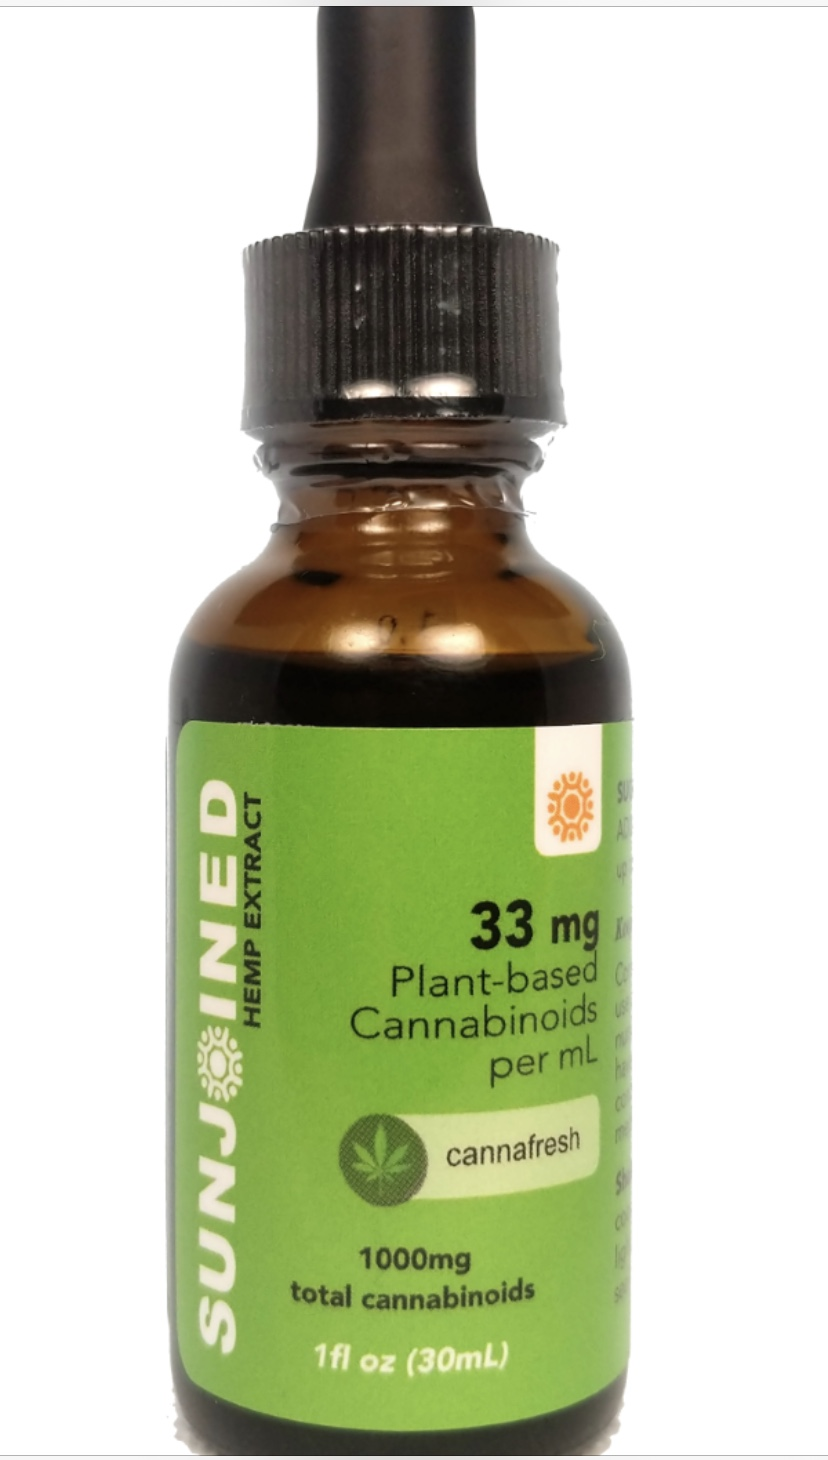 Cannafresh Flavor CBD Oil